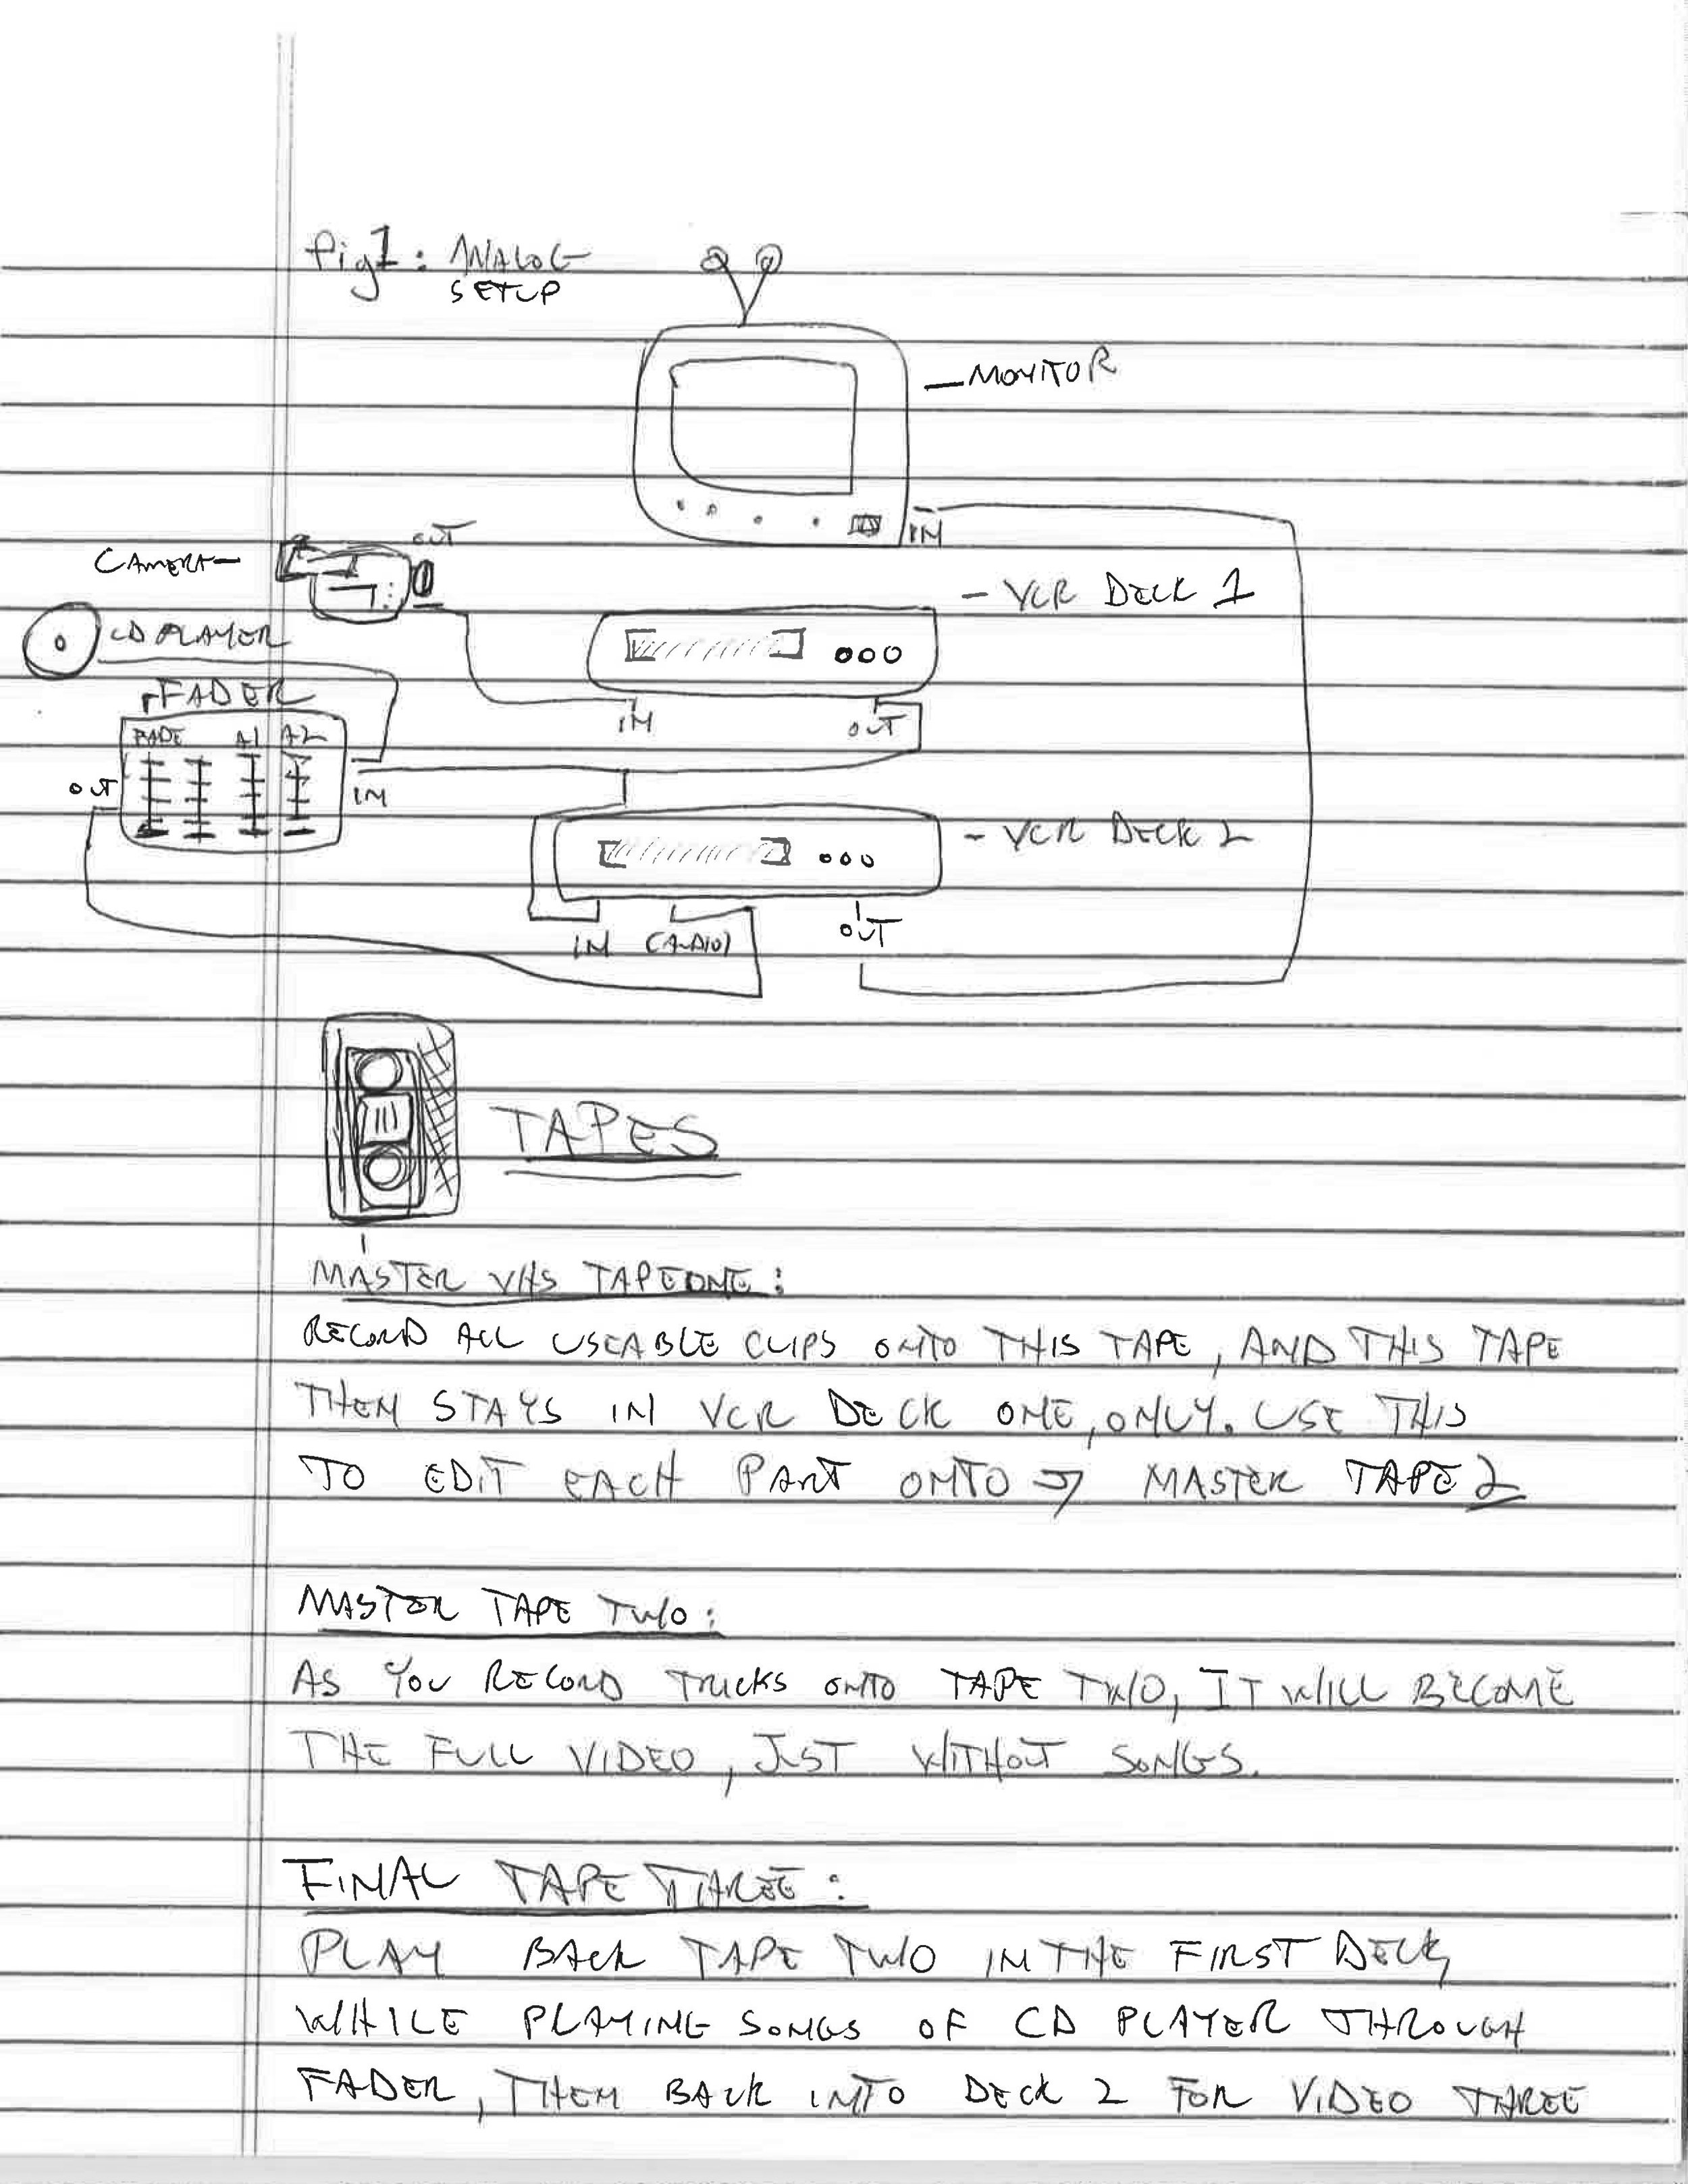 Matt's diagram of his home editing system in the late 1990's